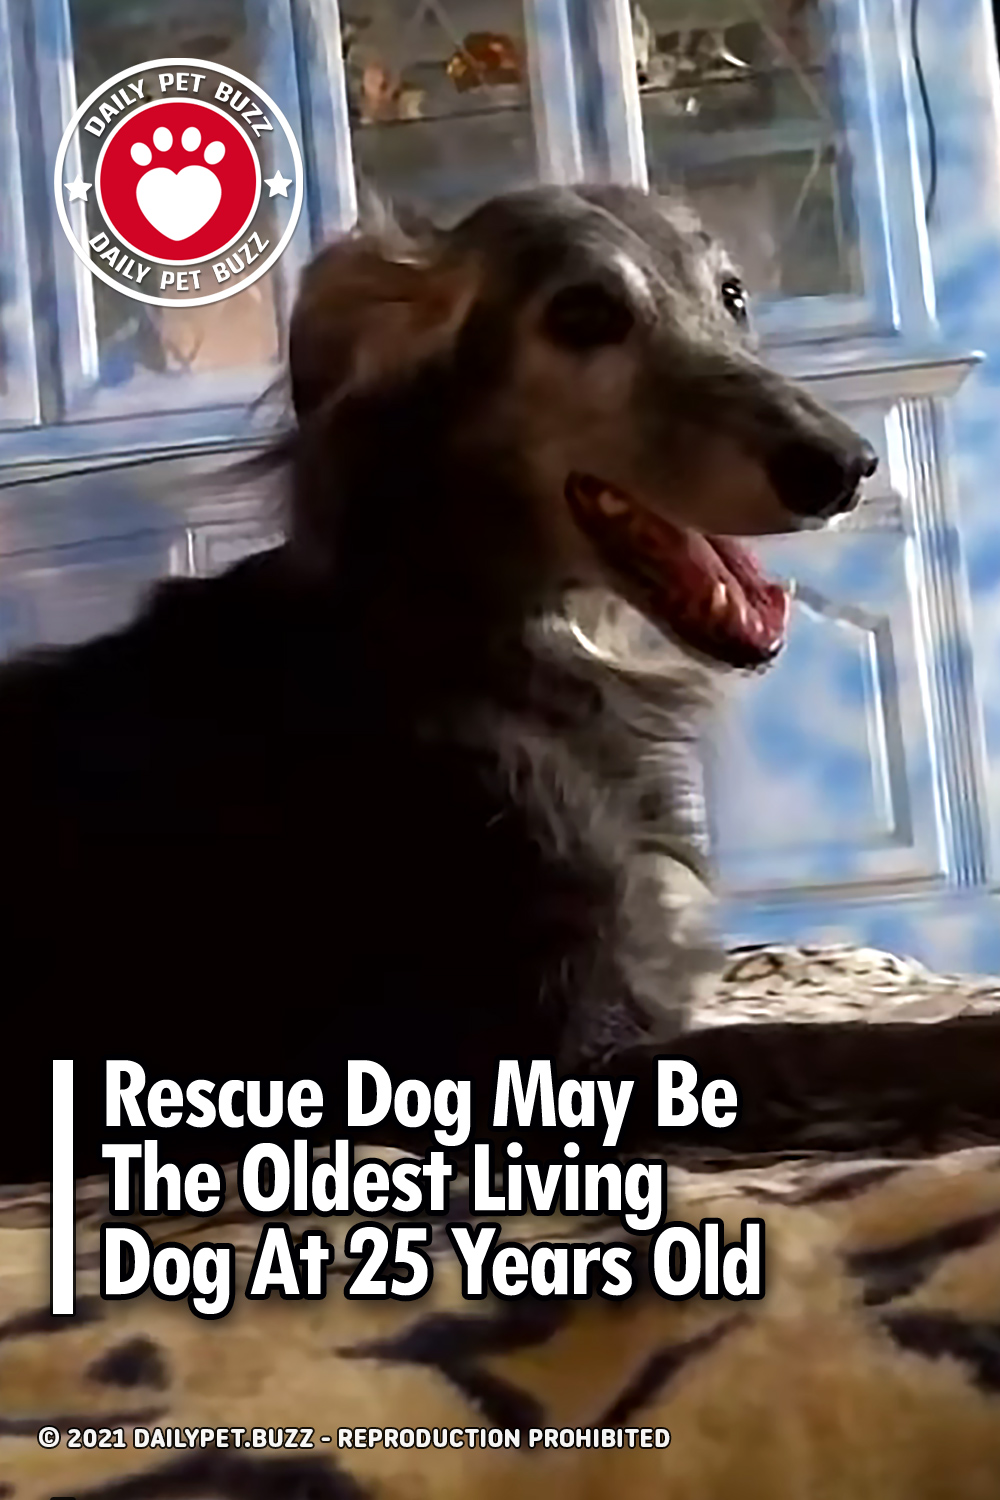 Rescue Dog May Be The Oldest Living Dog At 25 Years Old